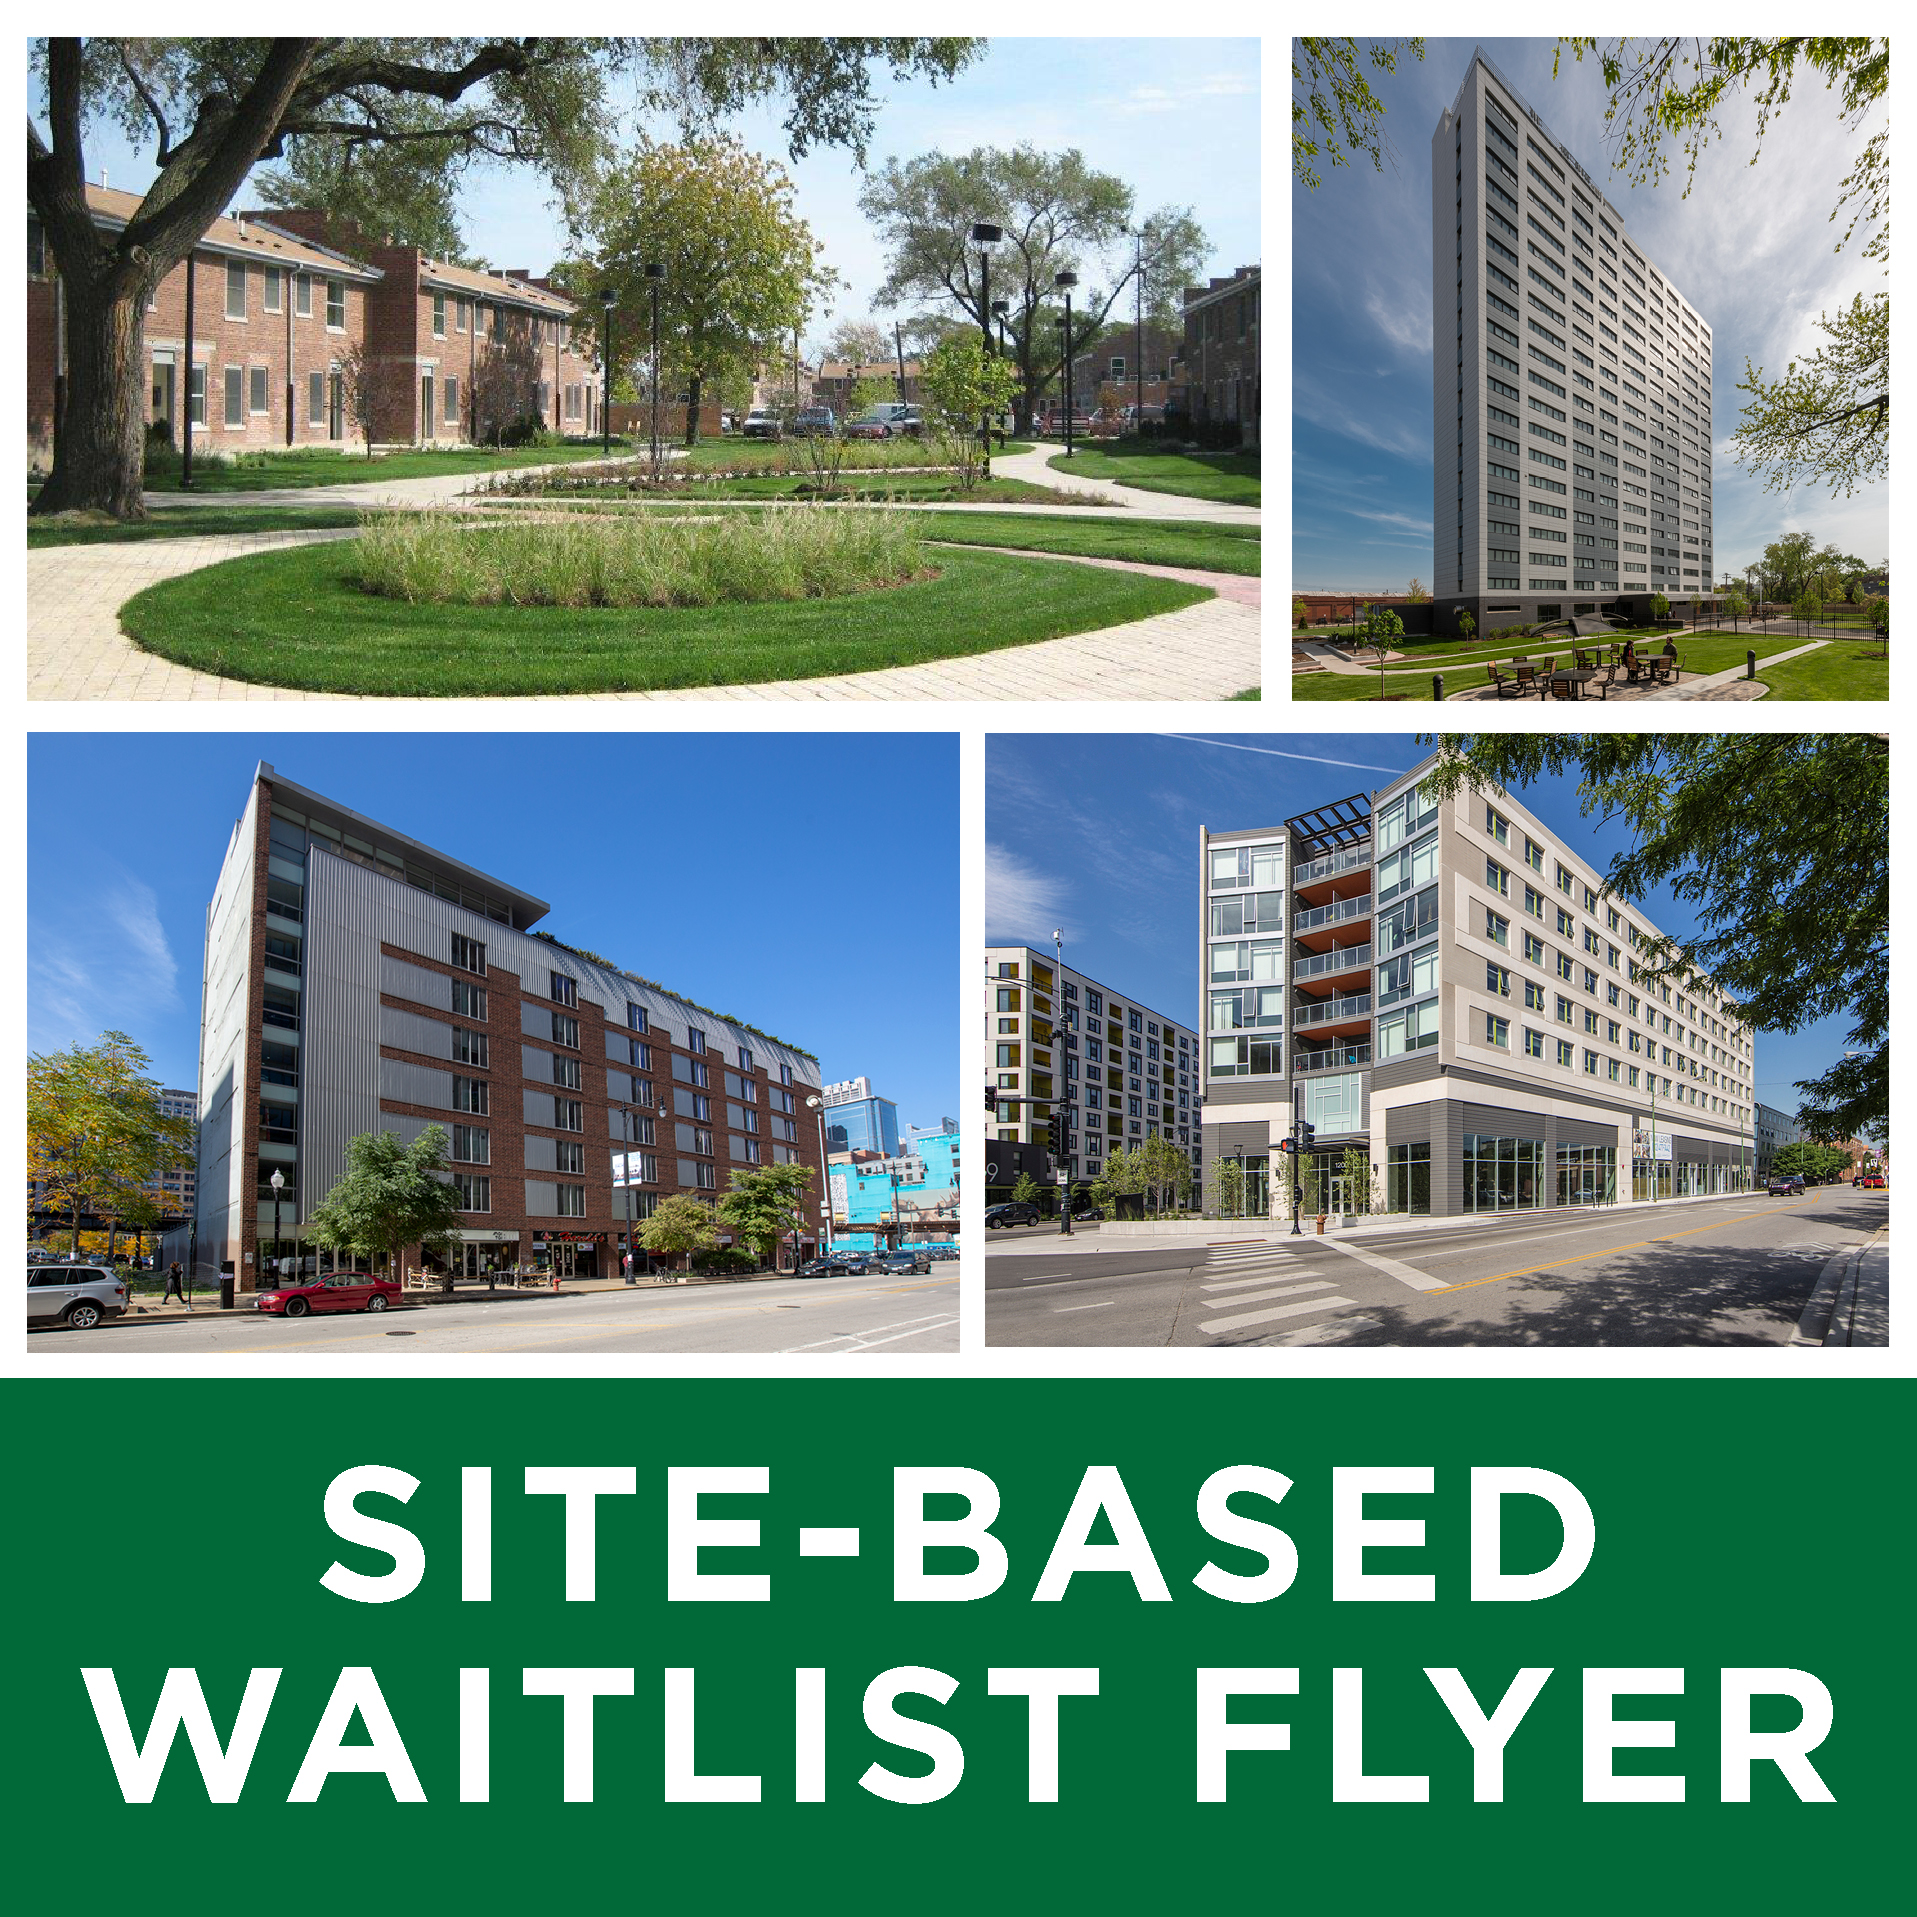 Waitlist flyer